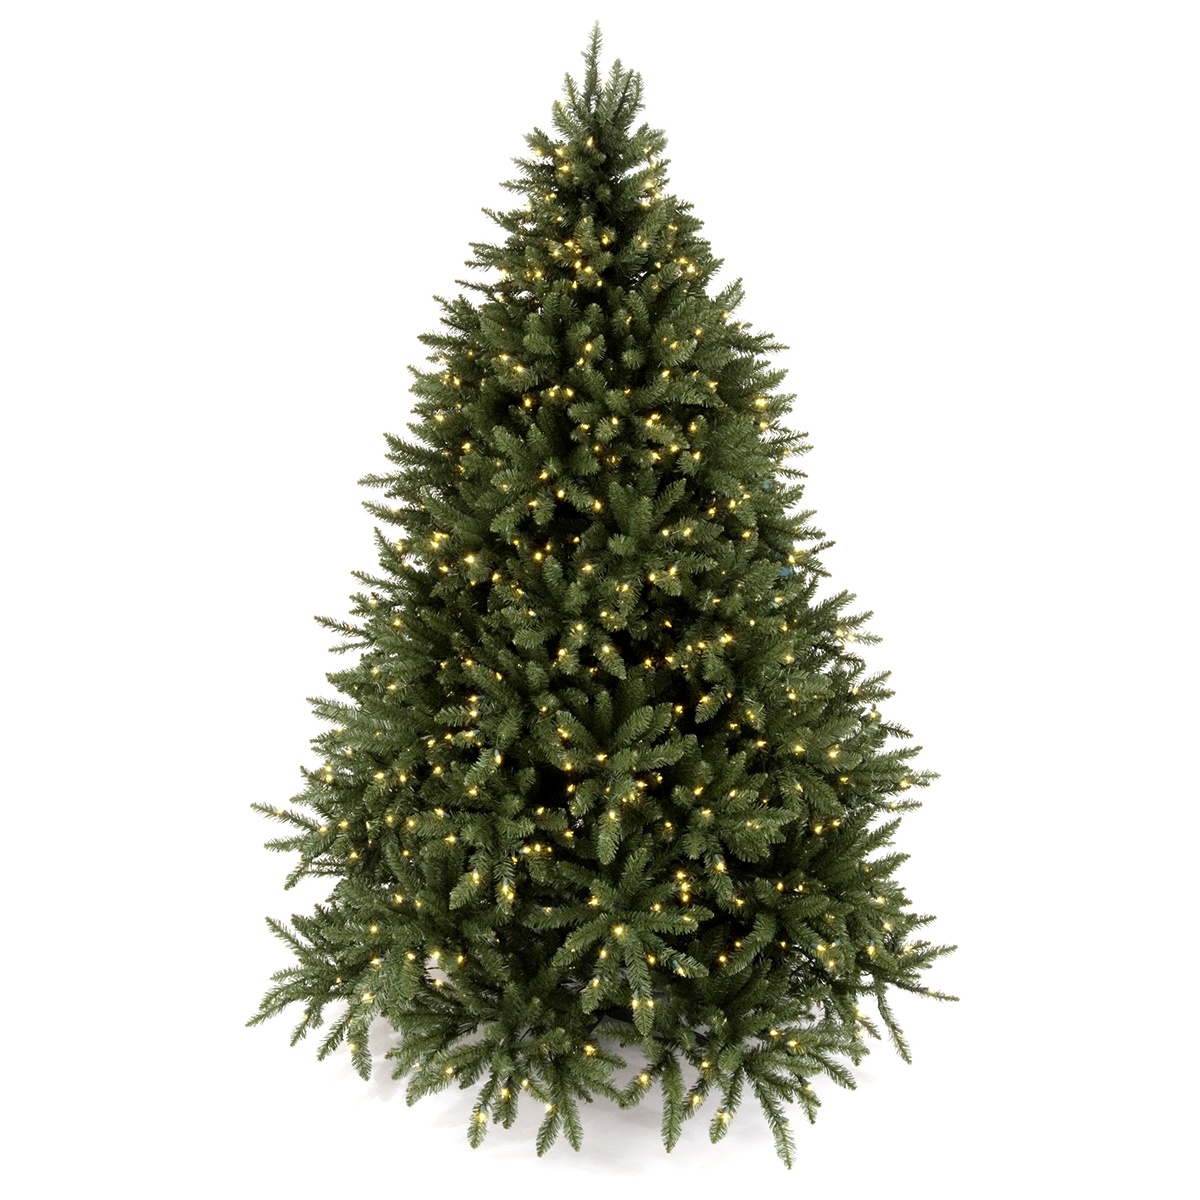 Artifical Christmas Trees For Sale